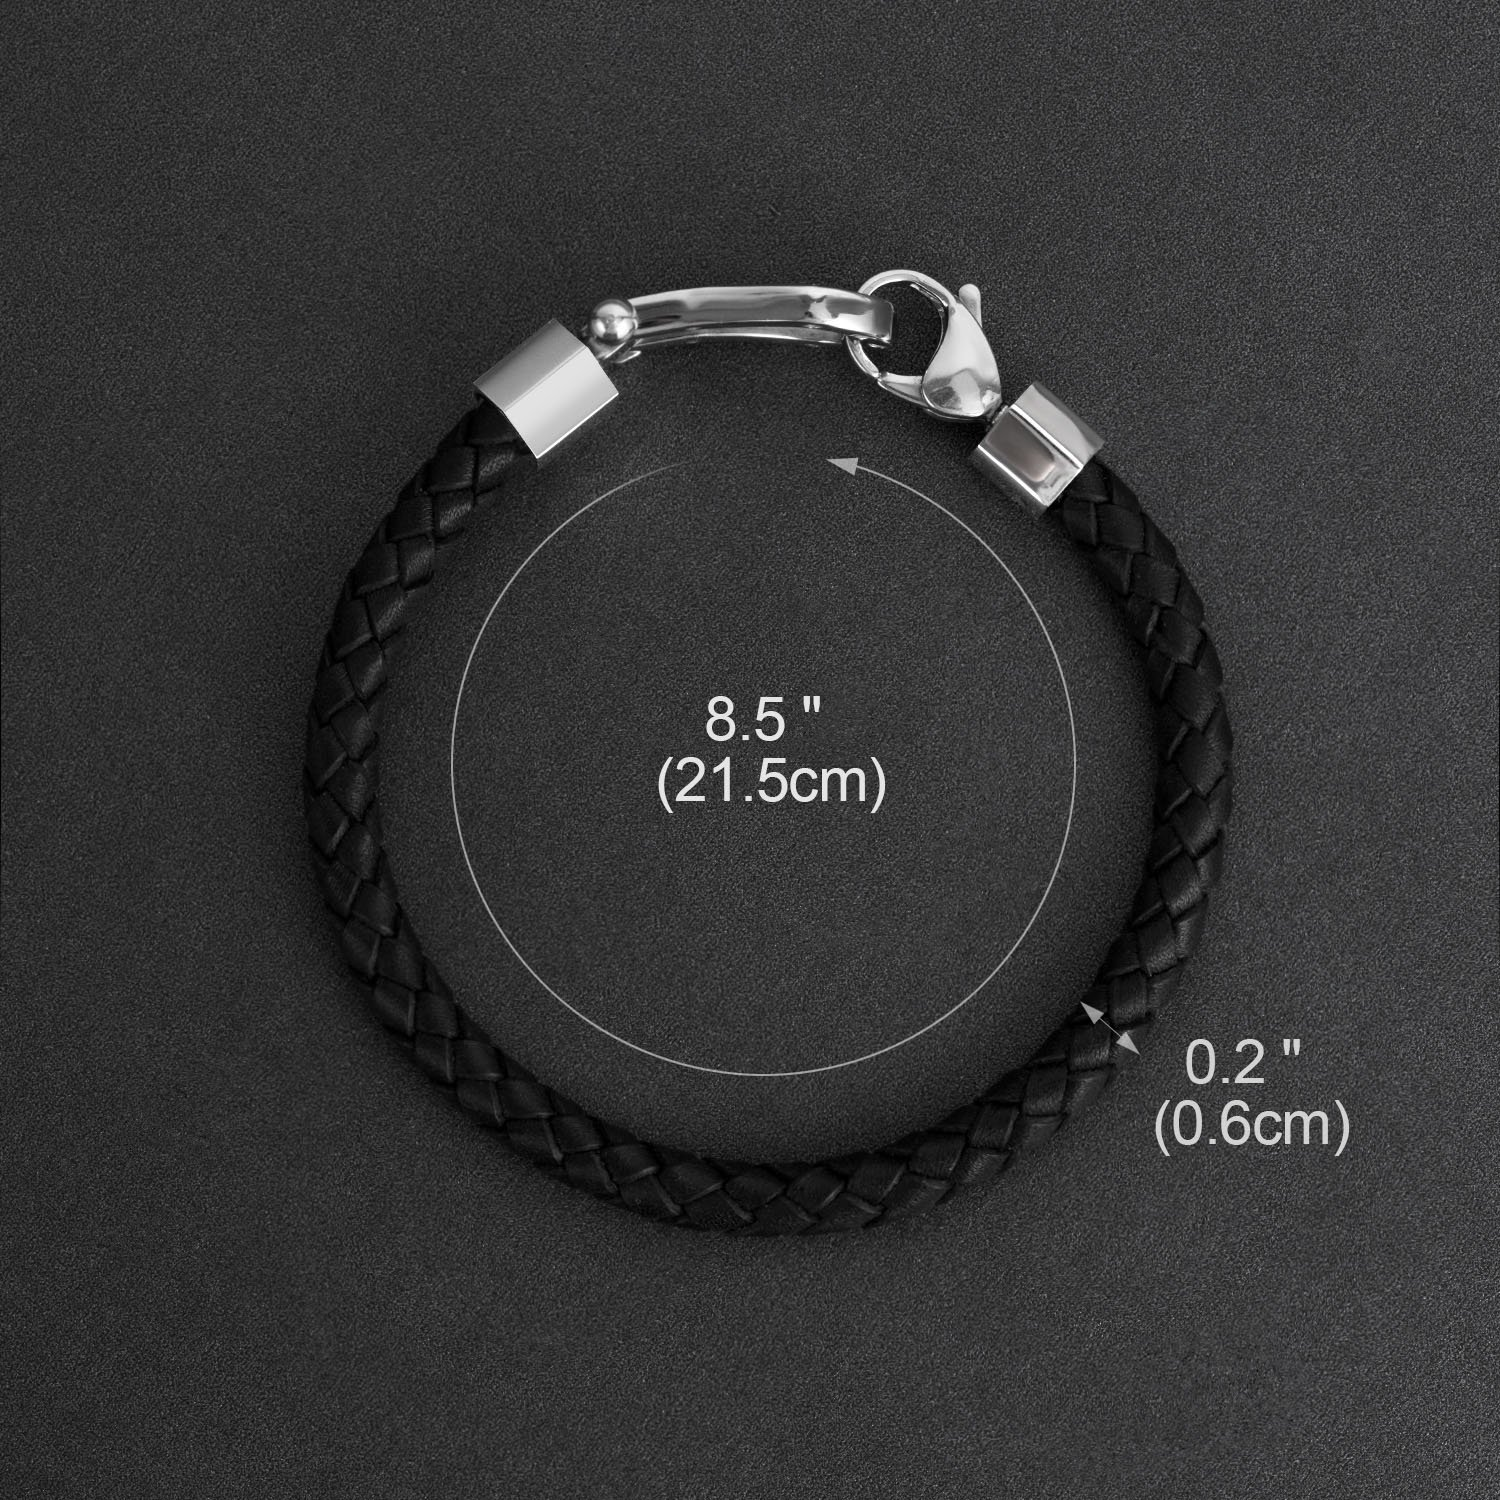 ZD-jewelry Mens  Leather Bracelet Cowhide Braided Good Luck Horseshoe Stainless Steel, Black Wrist Cuff Bangle Lobster Clip, Bracelet For Men 8.5 inch by ZD-jewelry (Image #4)